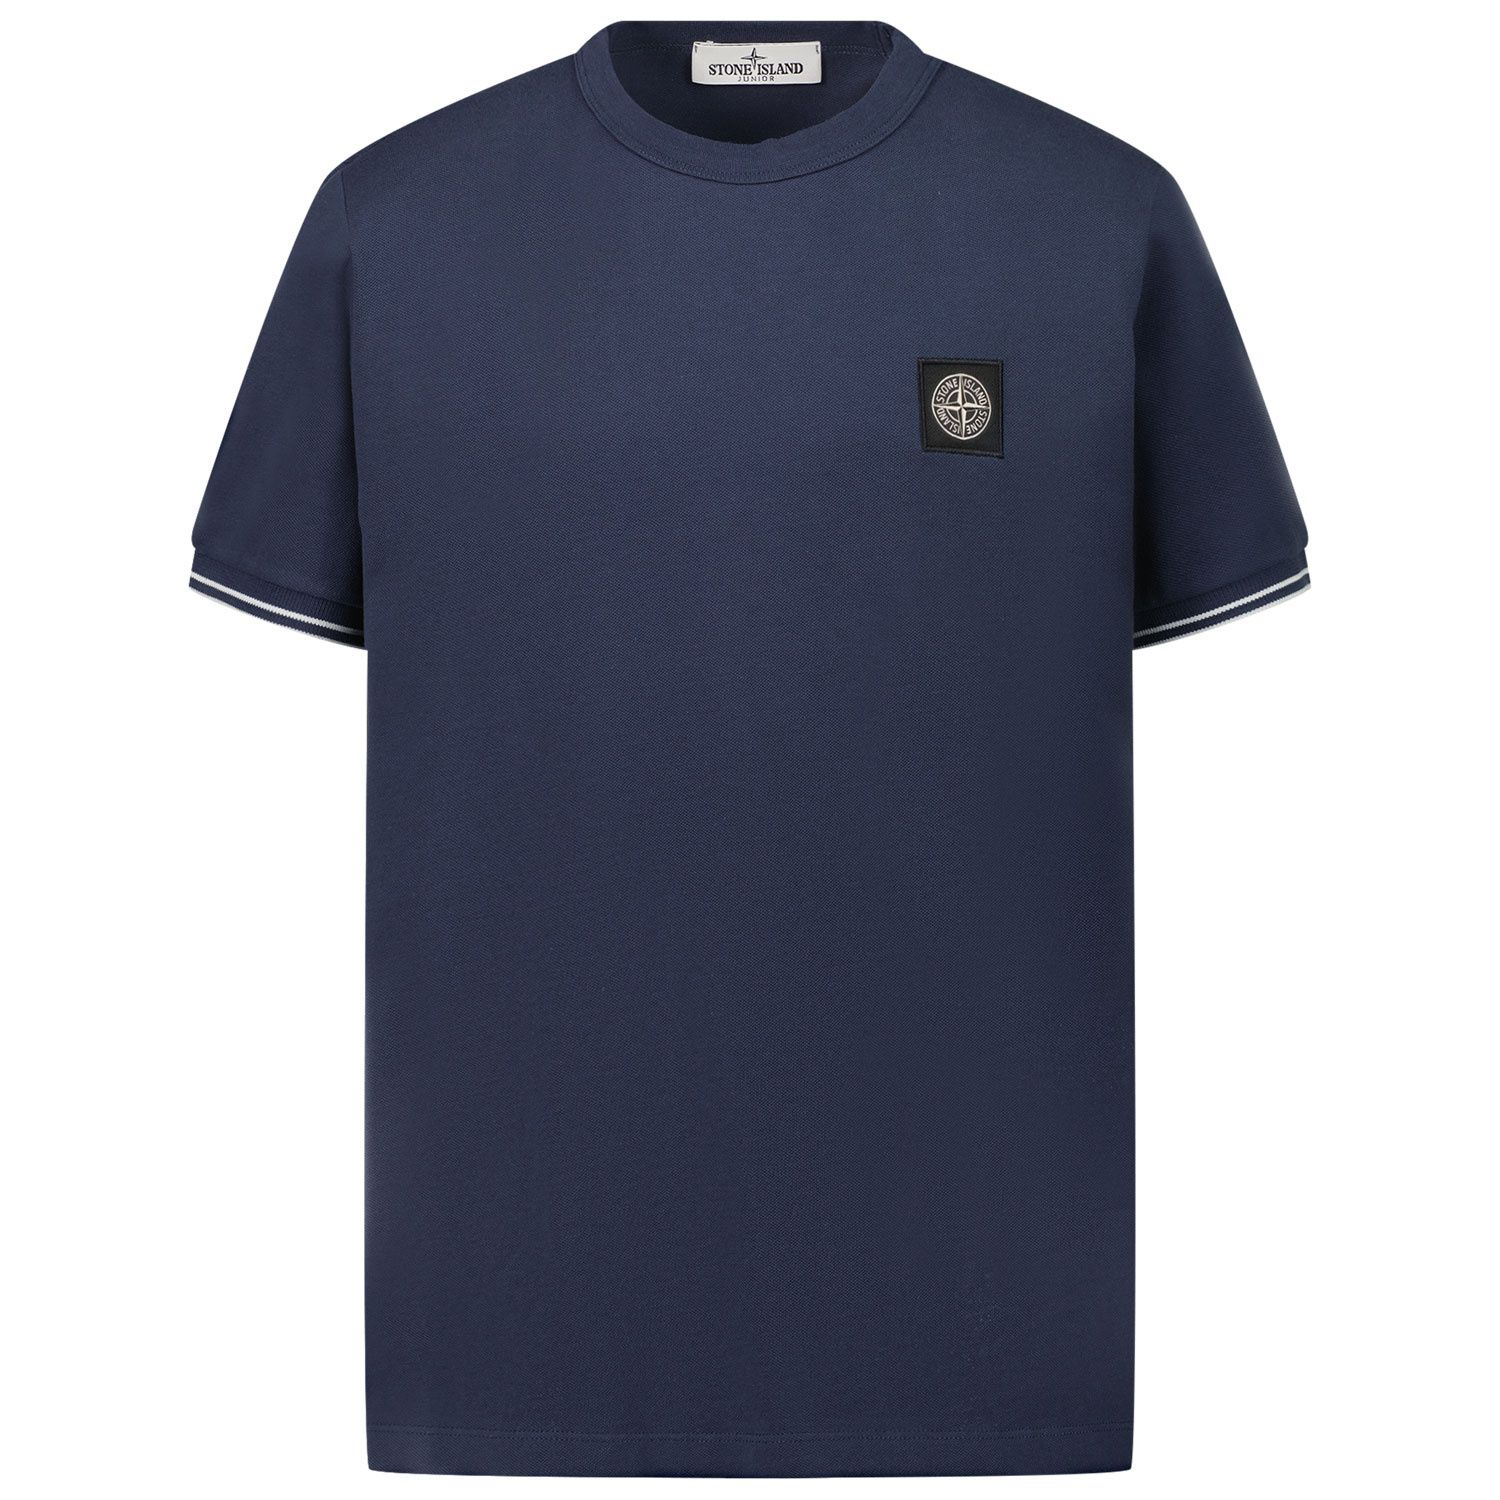 Picture of Stone Island 20748 kids t-shirt dark blue